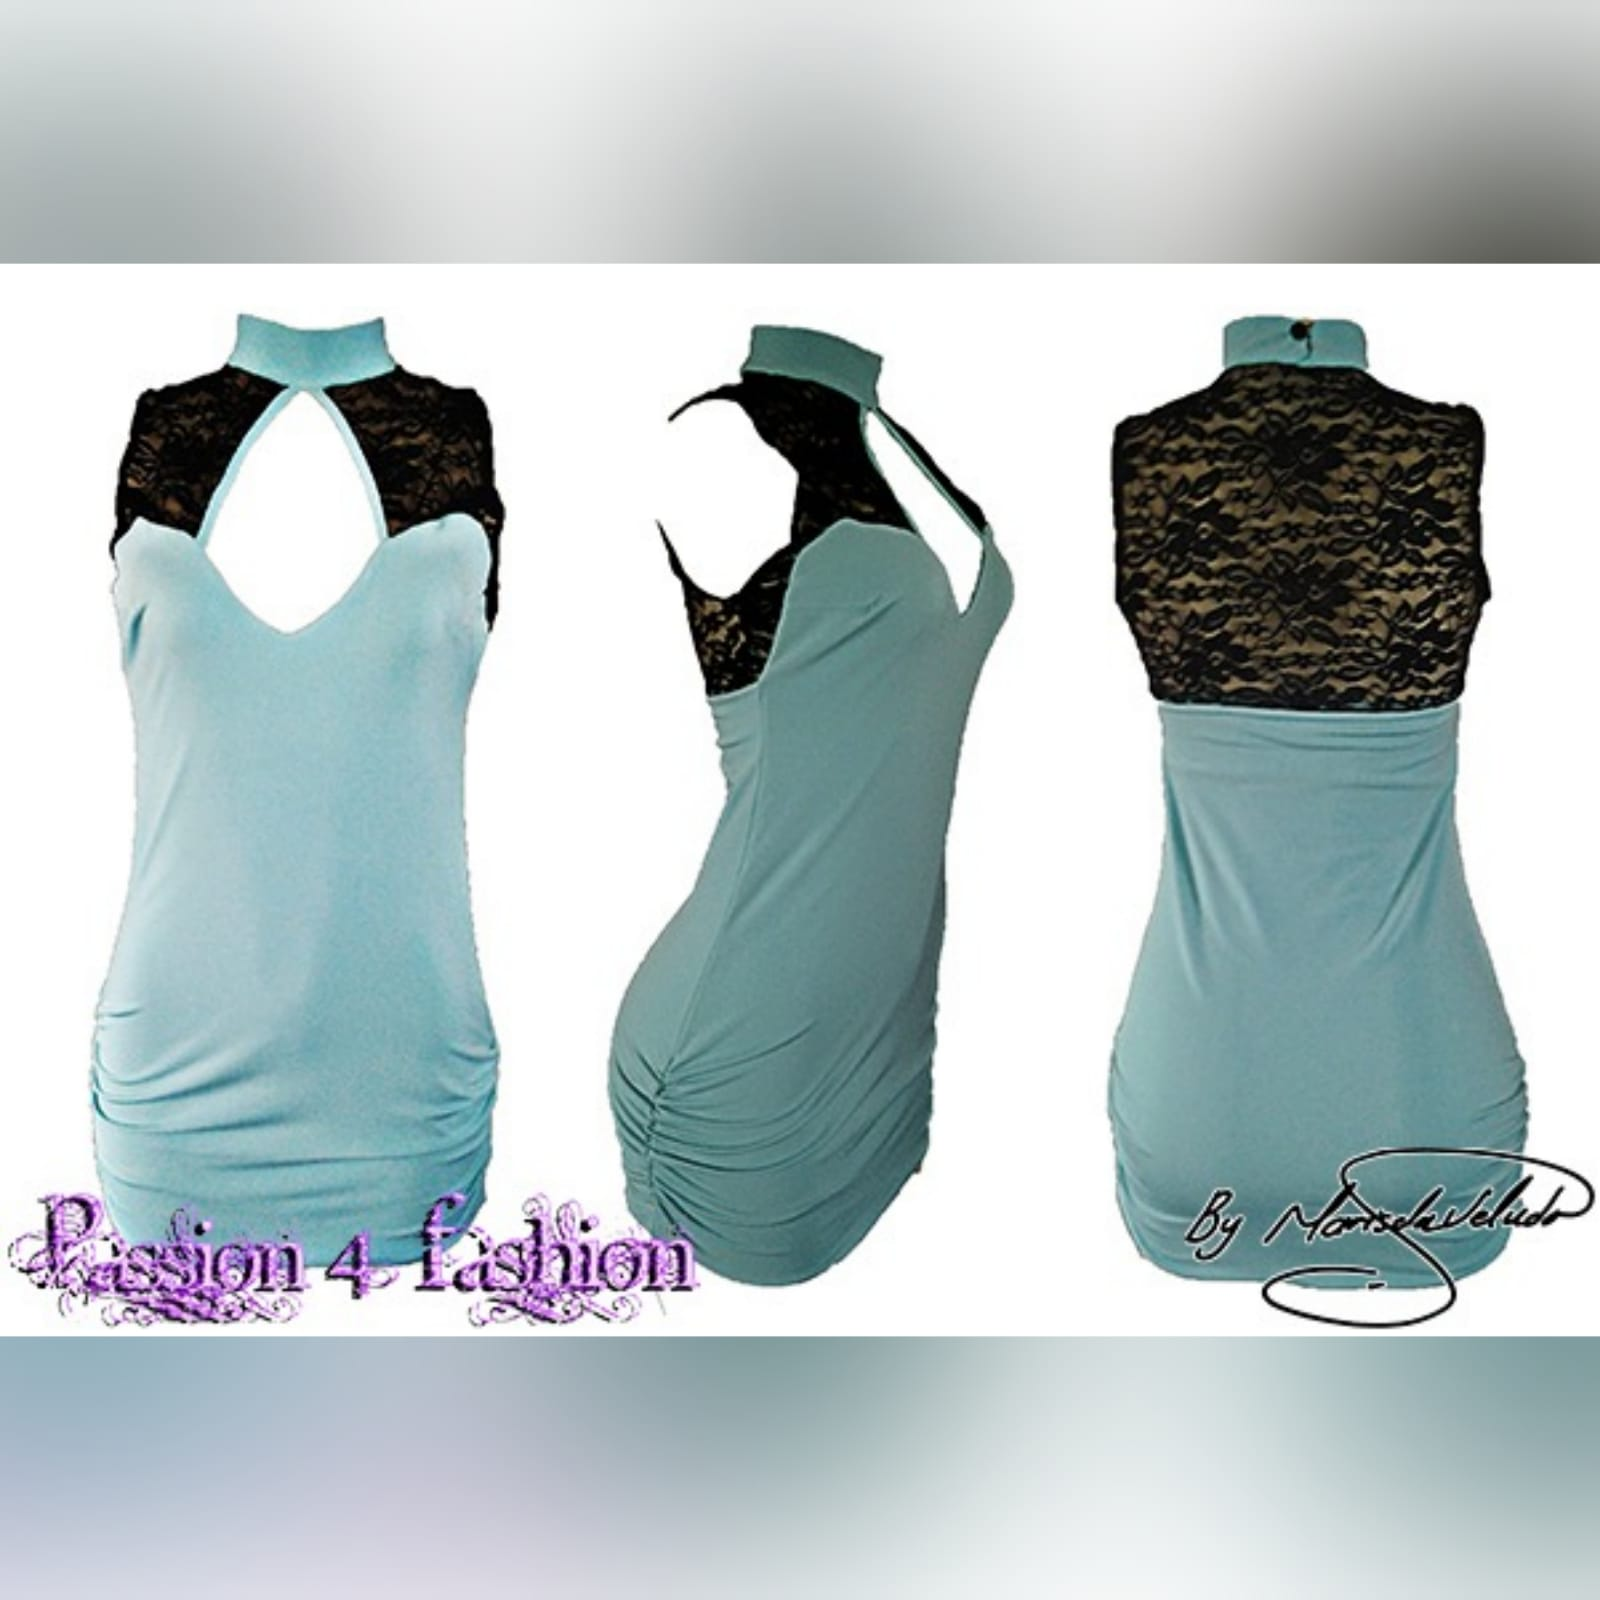 Turquoise blue and black short smart casual dress 4 turquoise blue and black short smart casual dress. With a choker neckline, open cleavage and black lace sheer back